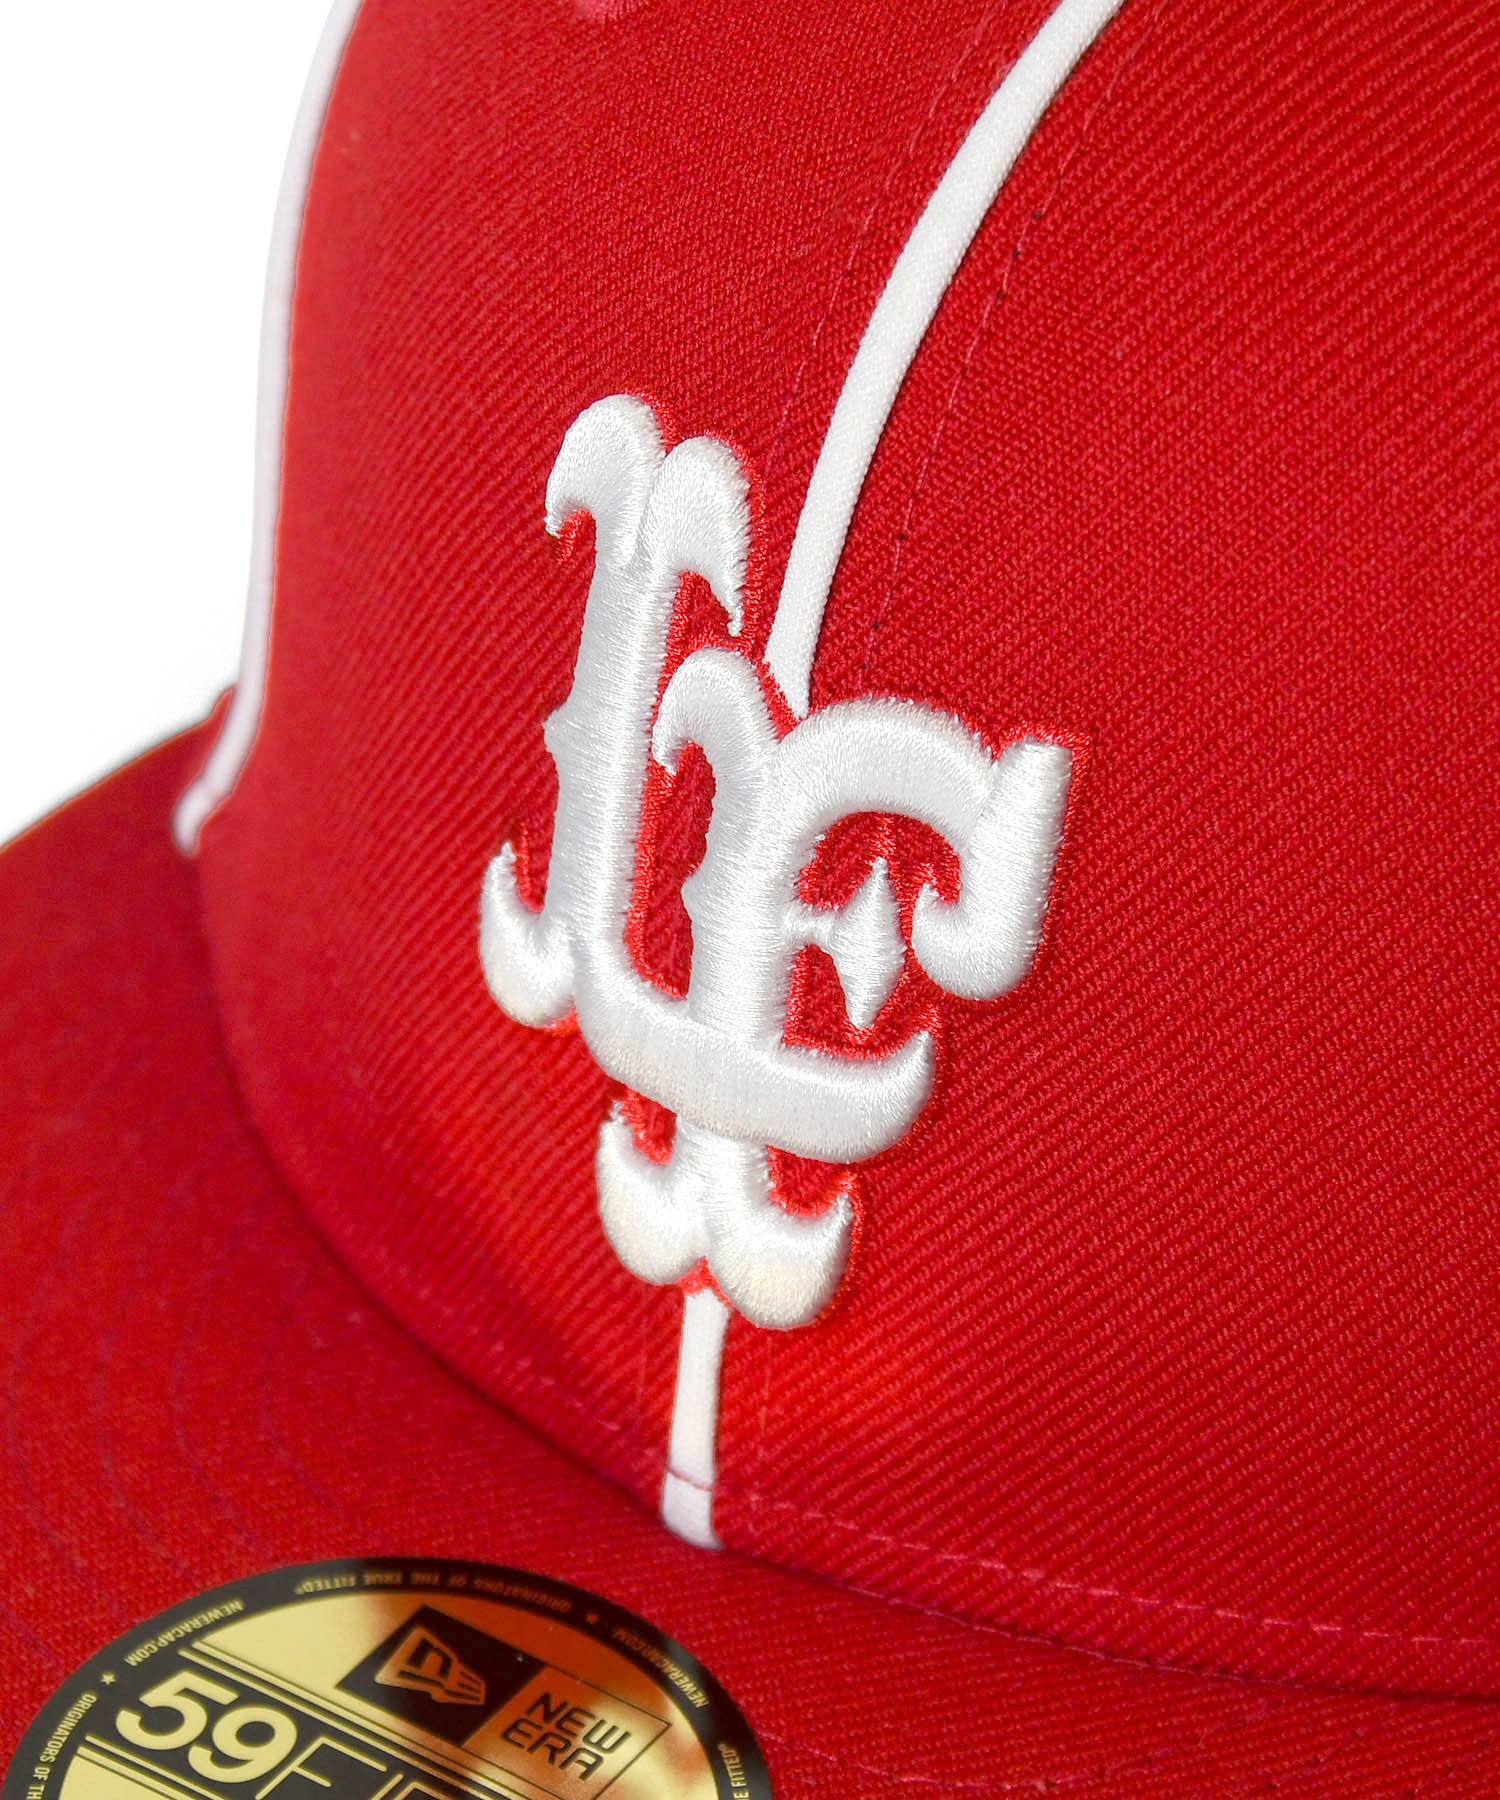 LFYT x NEW ERA PIPING LF LOGO 59FIFTY FITTED CAP RED LA201406